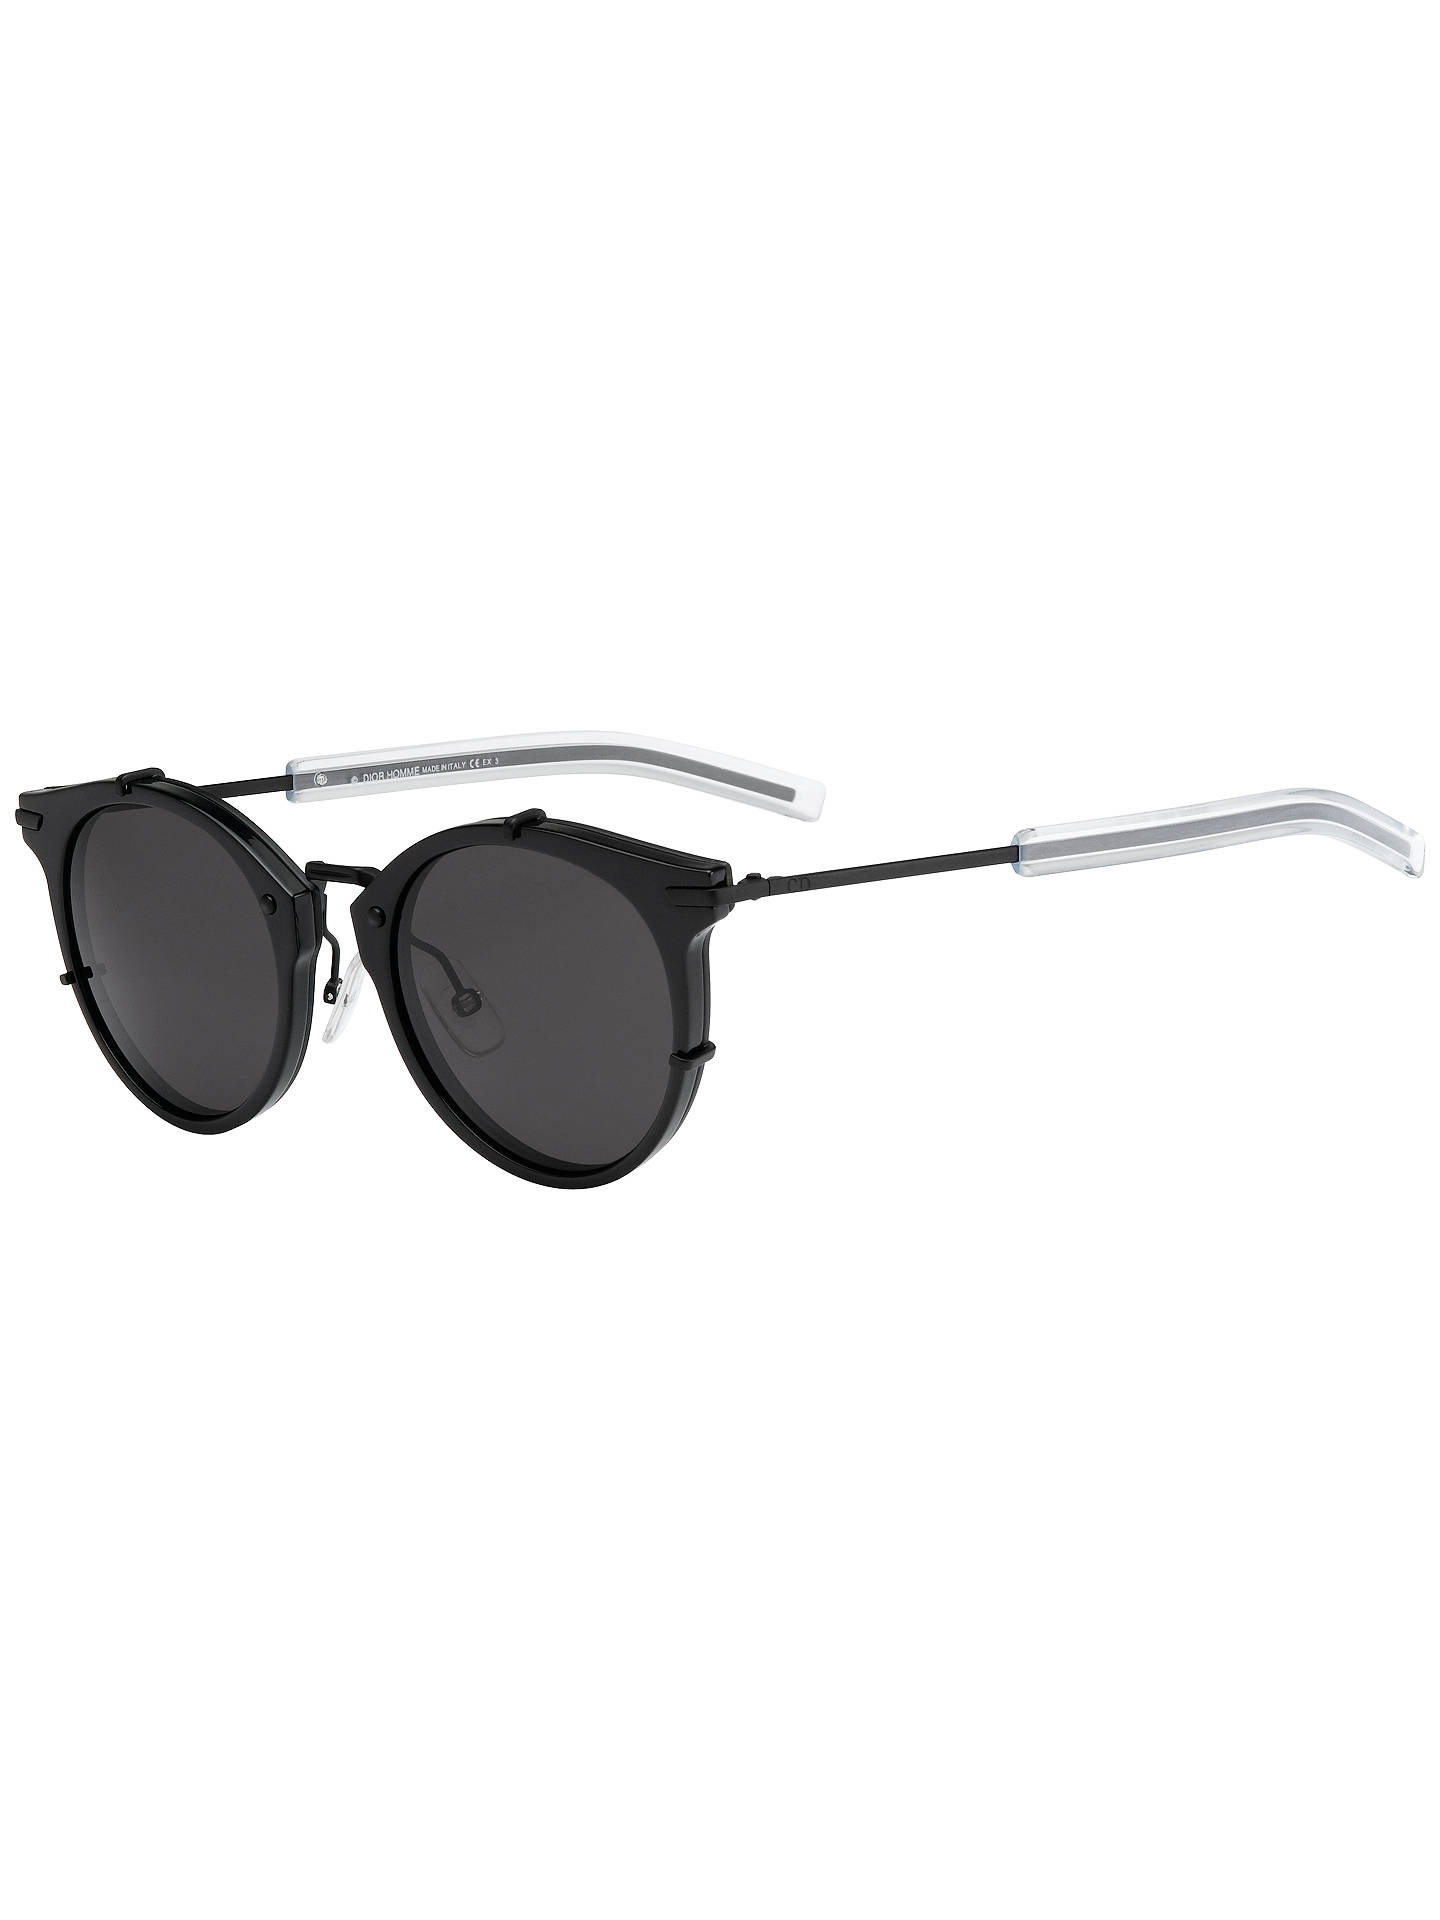 f2b2bf9413bb Dior DIOR0196S Round Sunglasses at John Lewis   Partners